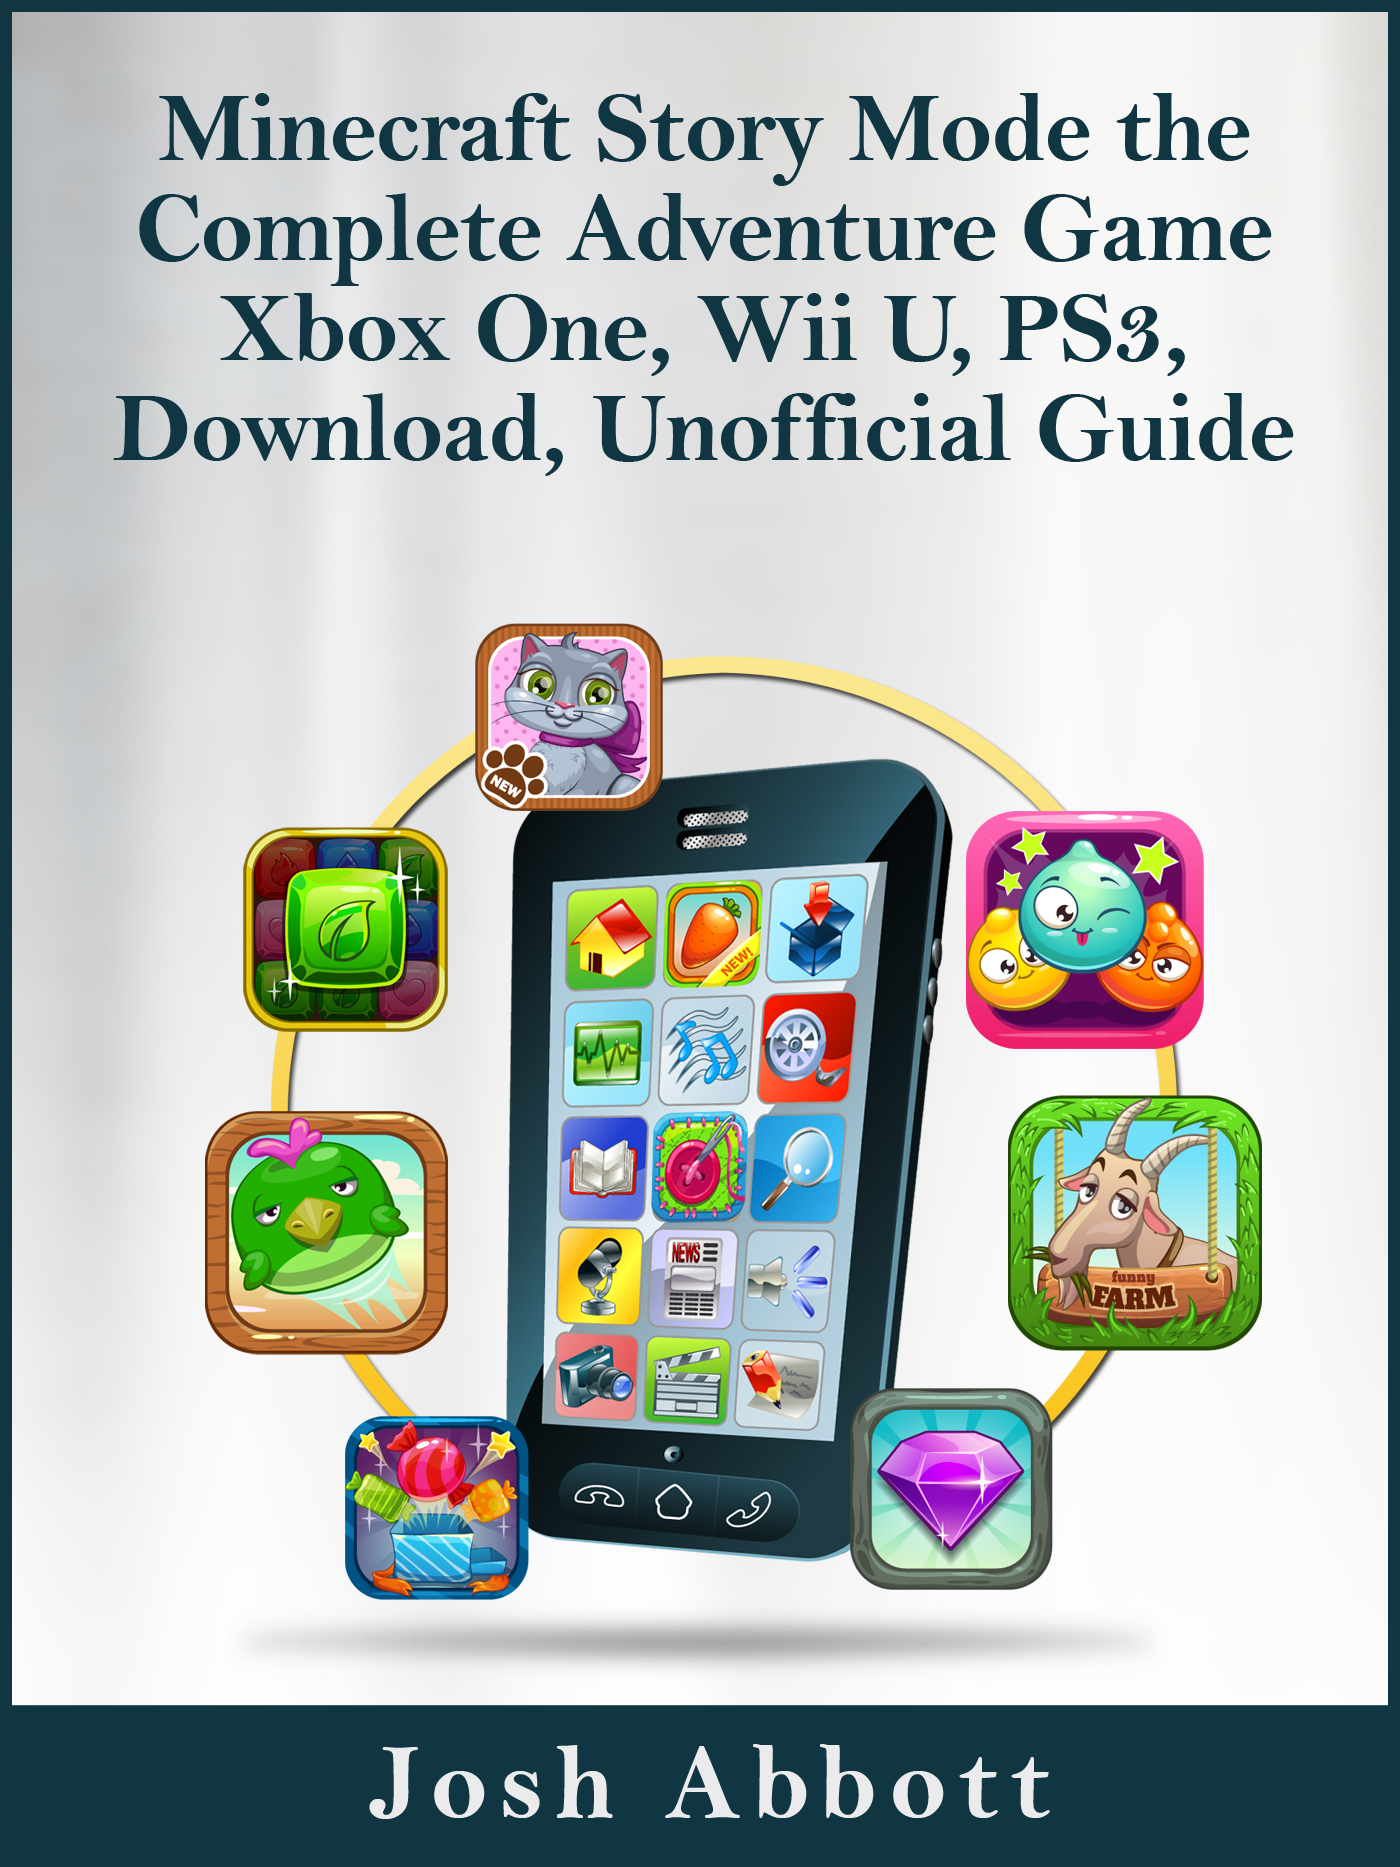 Minecraft Story Mode the Complete Adventure Game Xbox One, Wii U, PS3,  Download, Unofficial Guide, an Ebook by Josh Abbott